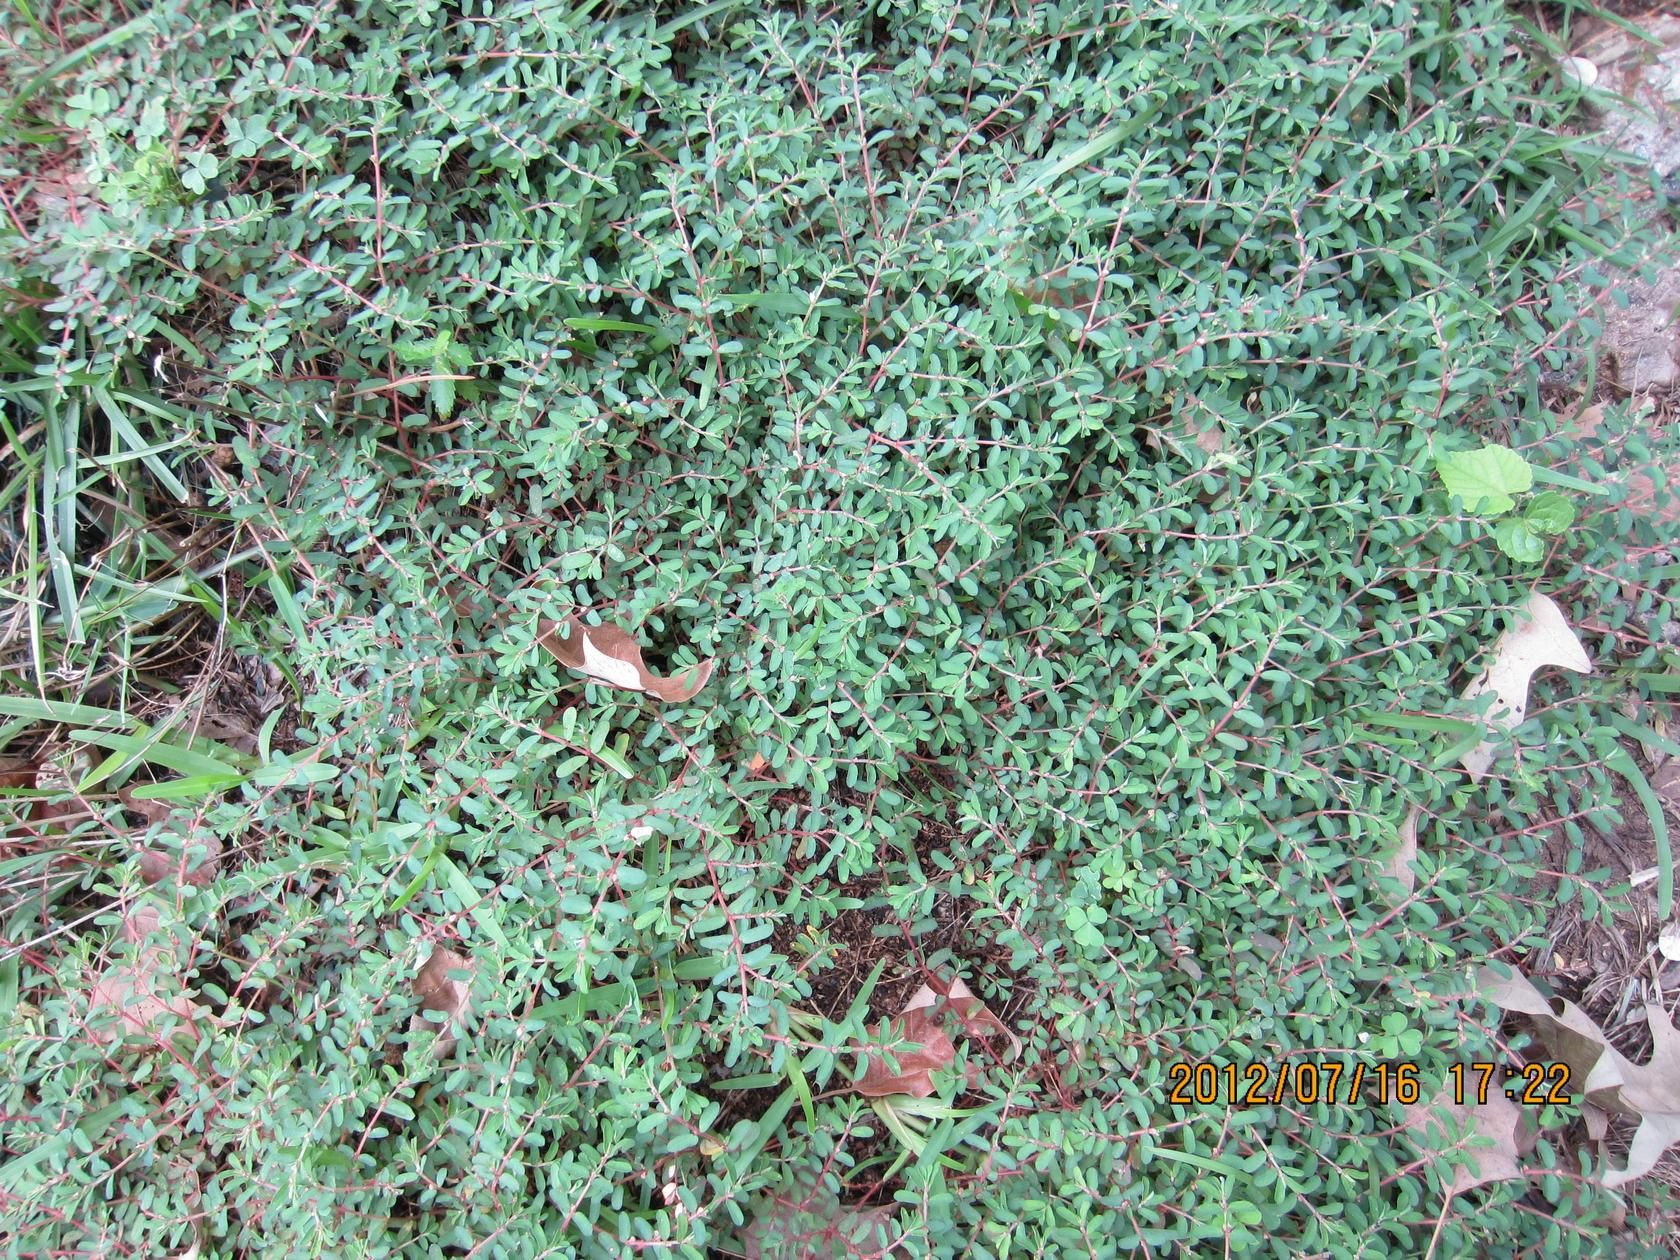 Identifying weeds in flower beds - Texas Grass Weed Identification Want To Be Able To Indentify Plants With Your Mobile Phone